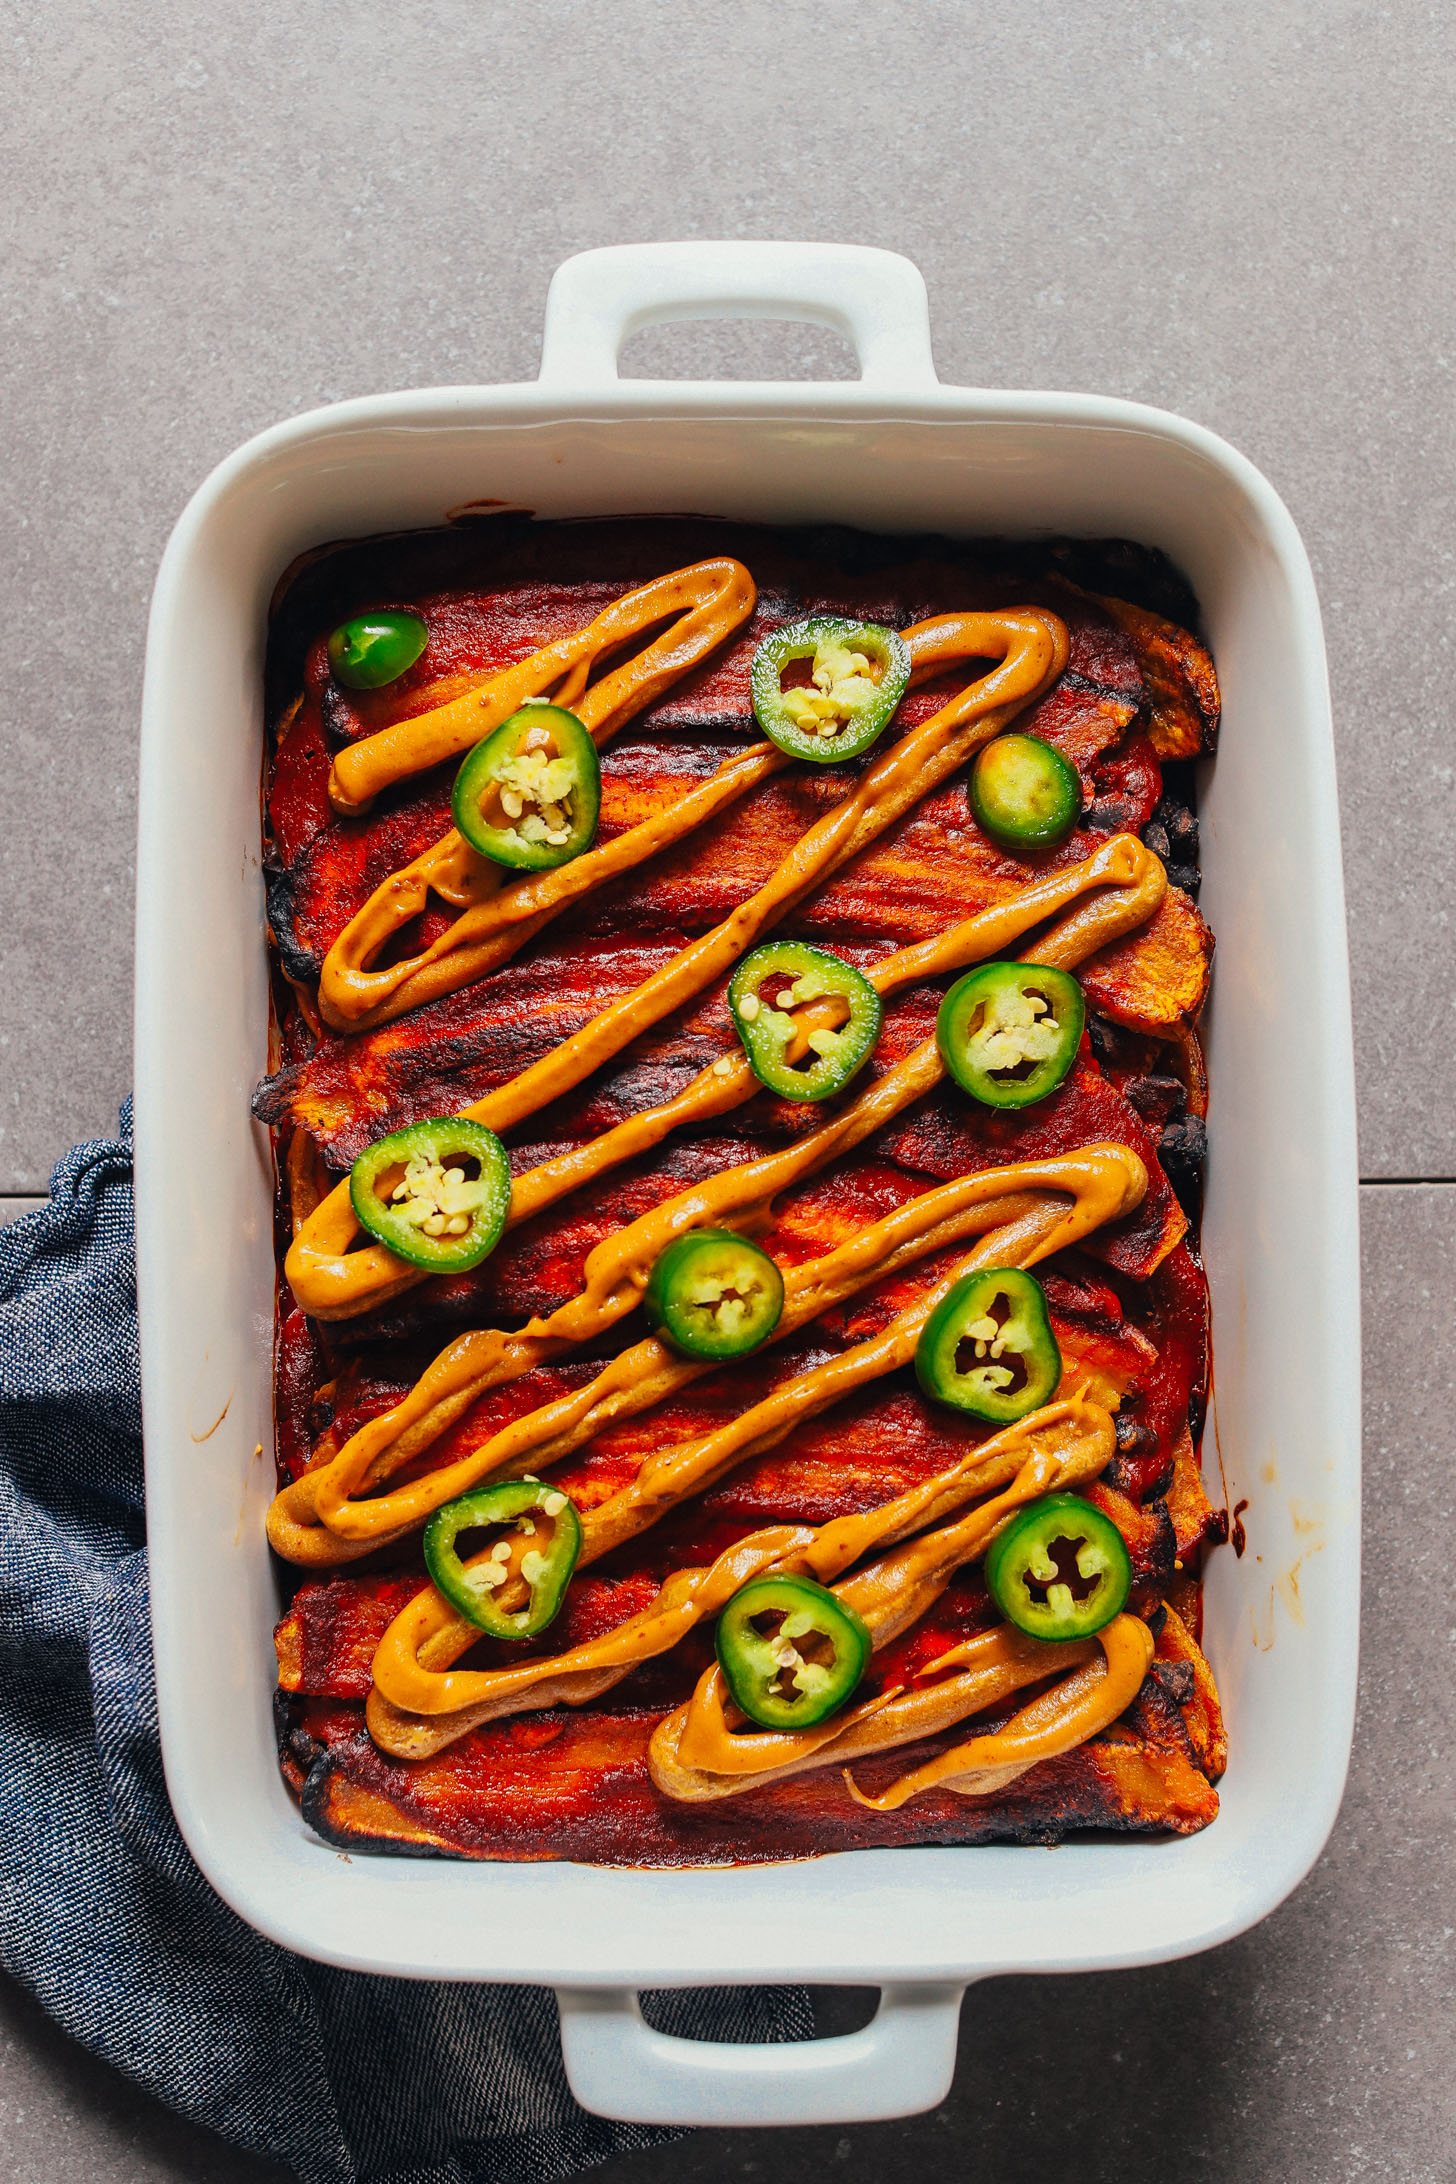 Baking dish filled with our recipe for Plantain Black Bean Enchilada Bake with Vegan Queso